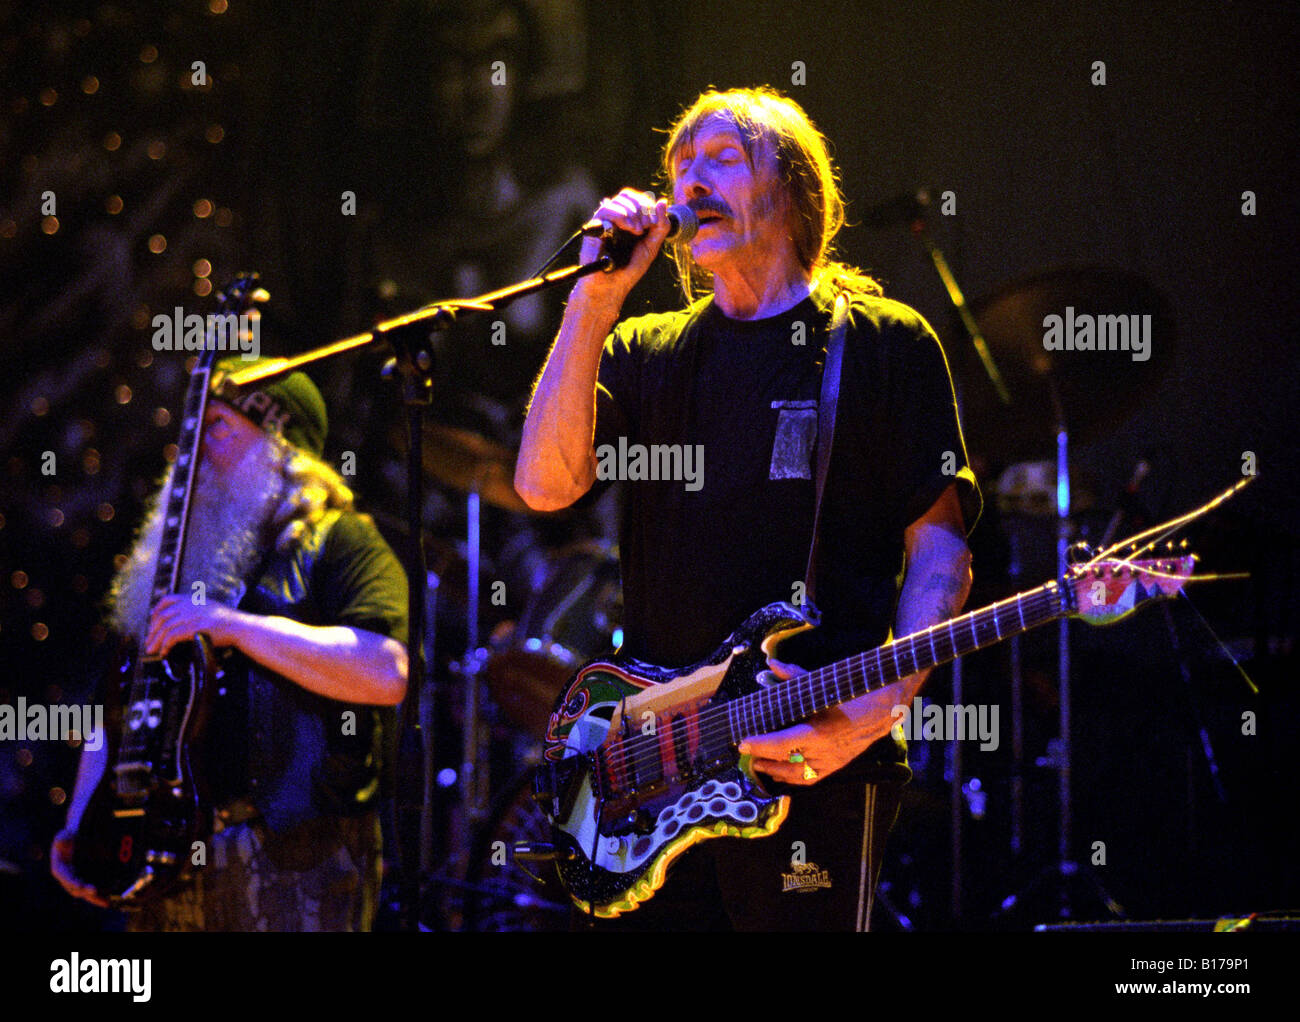 Dave Brock and Hawkwind in concert at Oakengates Theatre, Telford 2004 - Stock Image